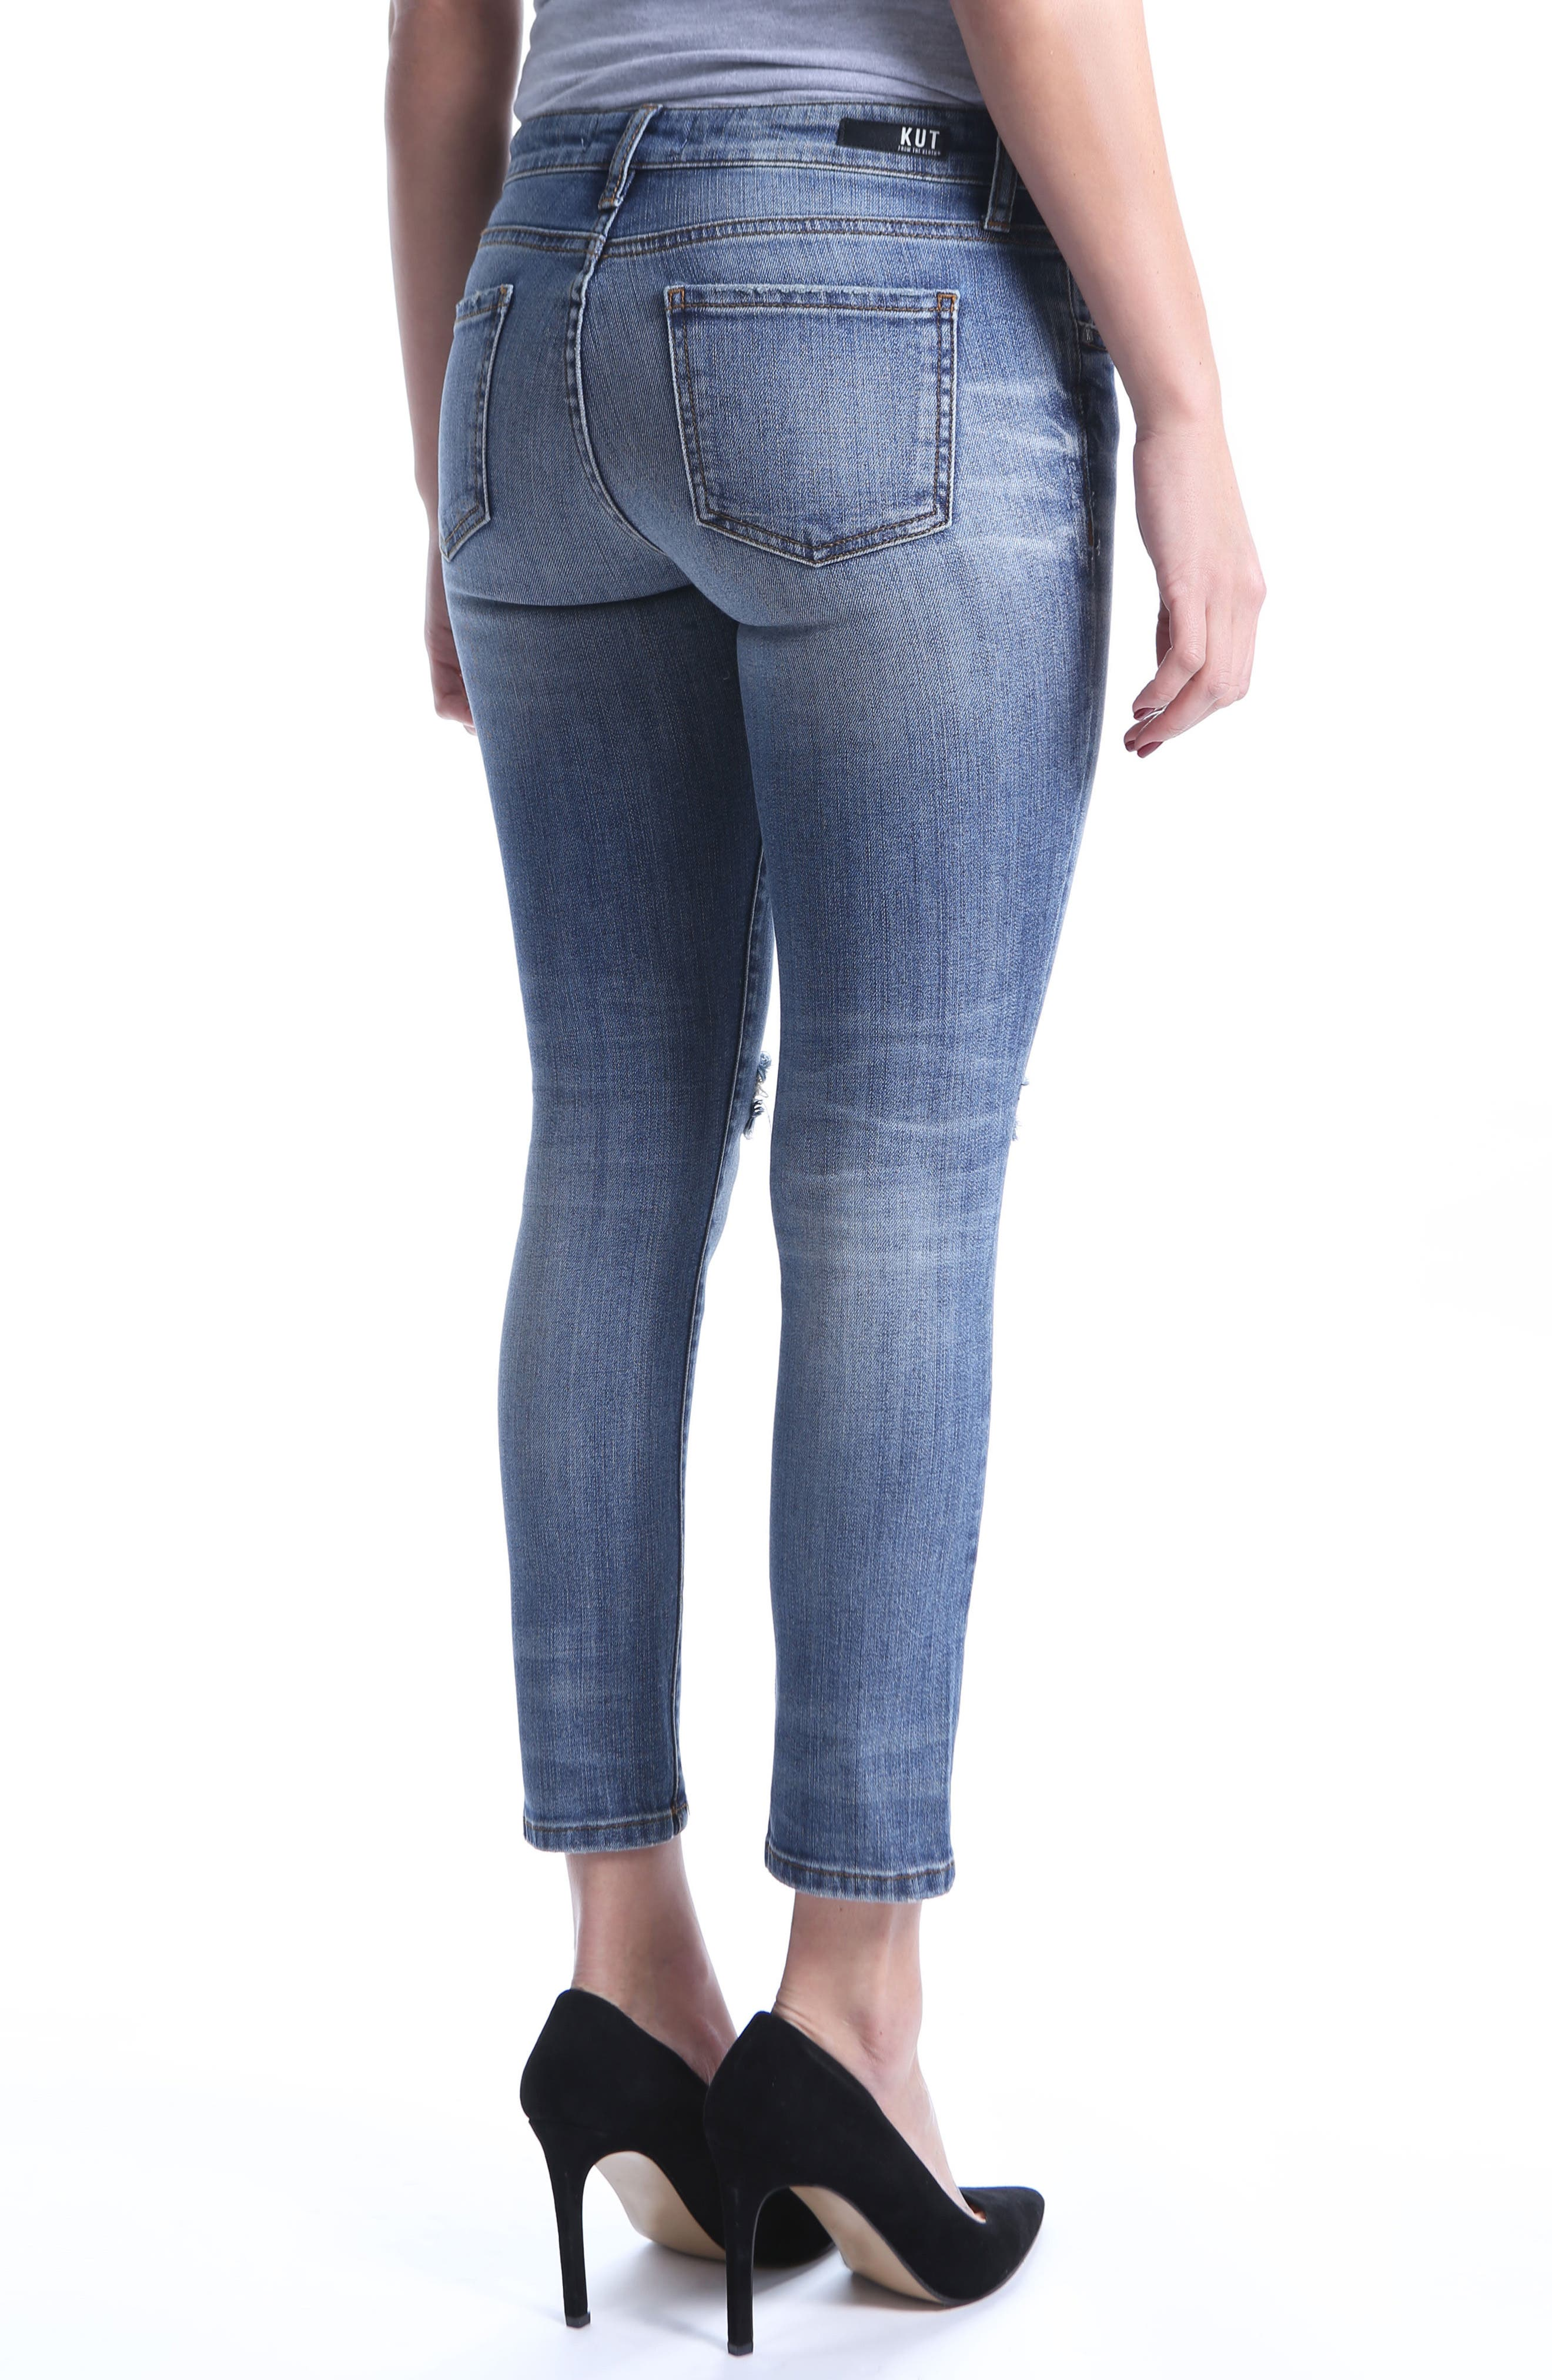 Catherine Ripped Straight Leg Ankle Jeans,                             Alternate thumbnail 2, color,                             Increase